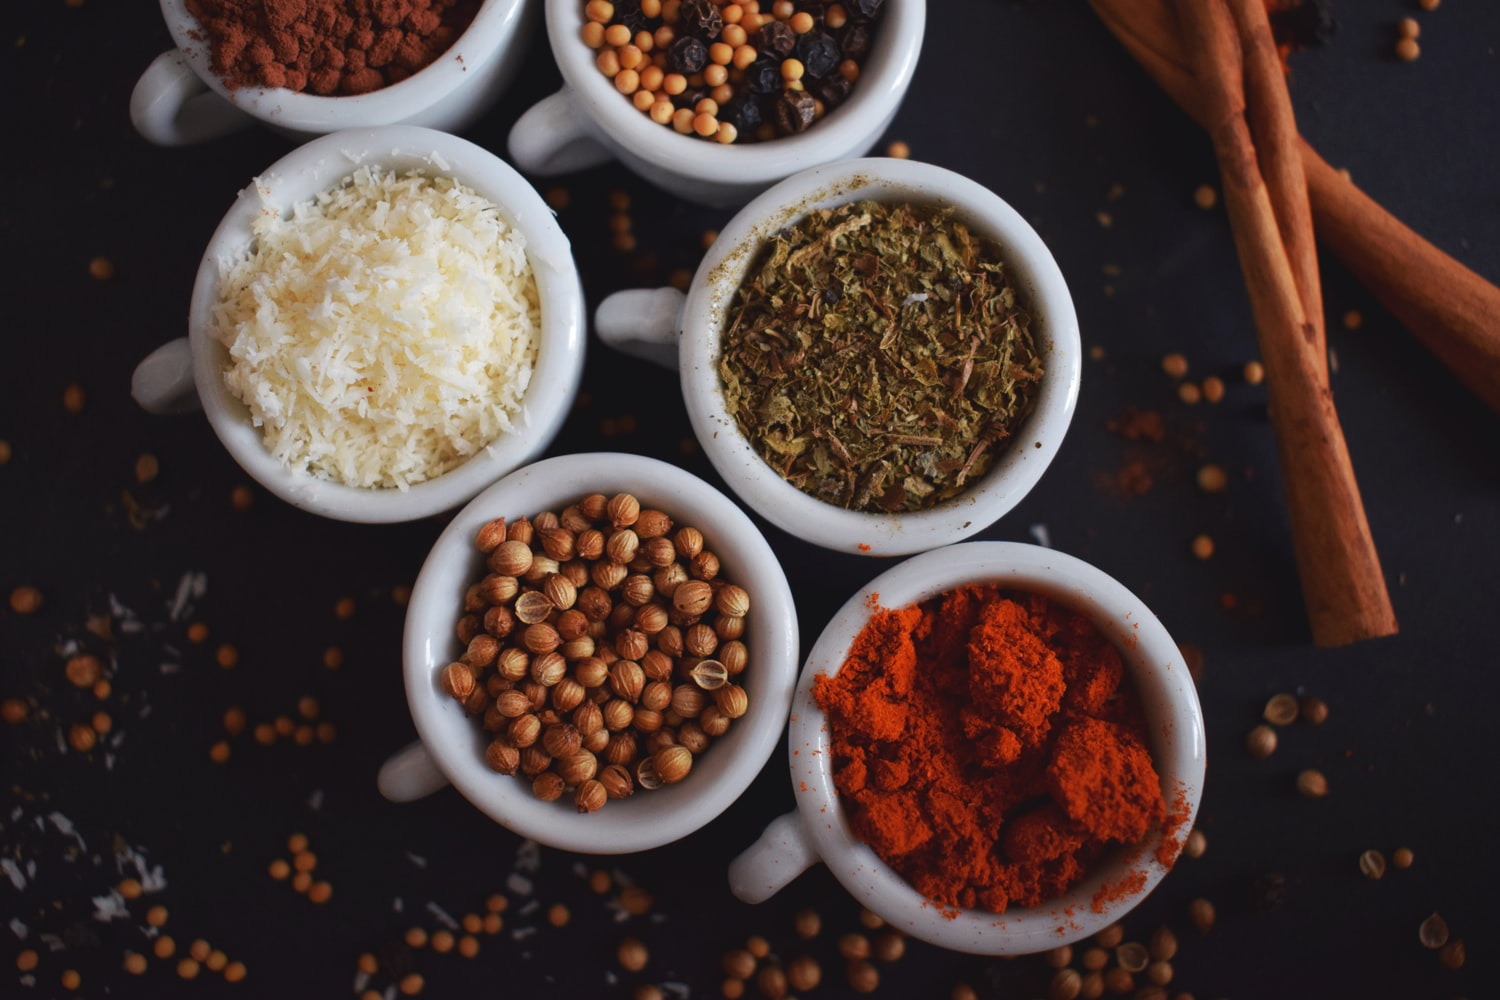 5 Spices for Healthier & Tastier Dishes